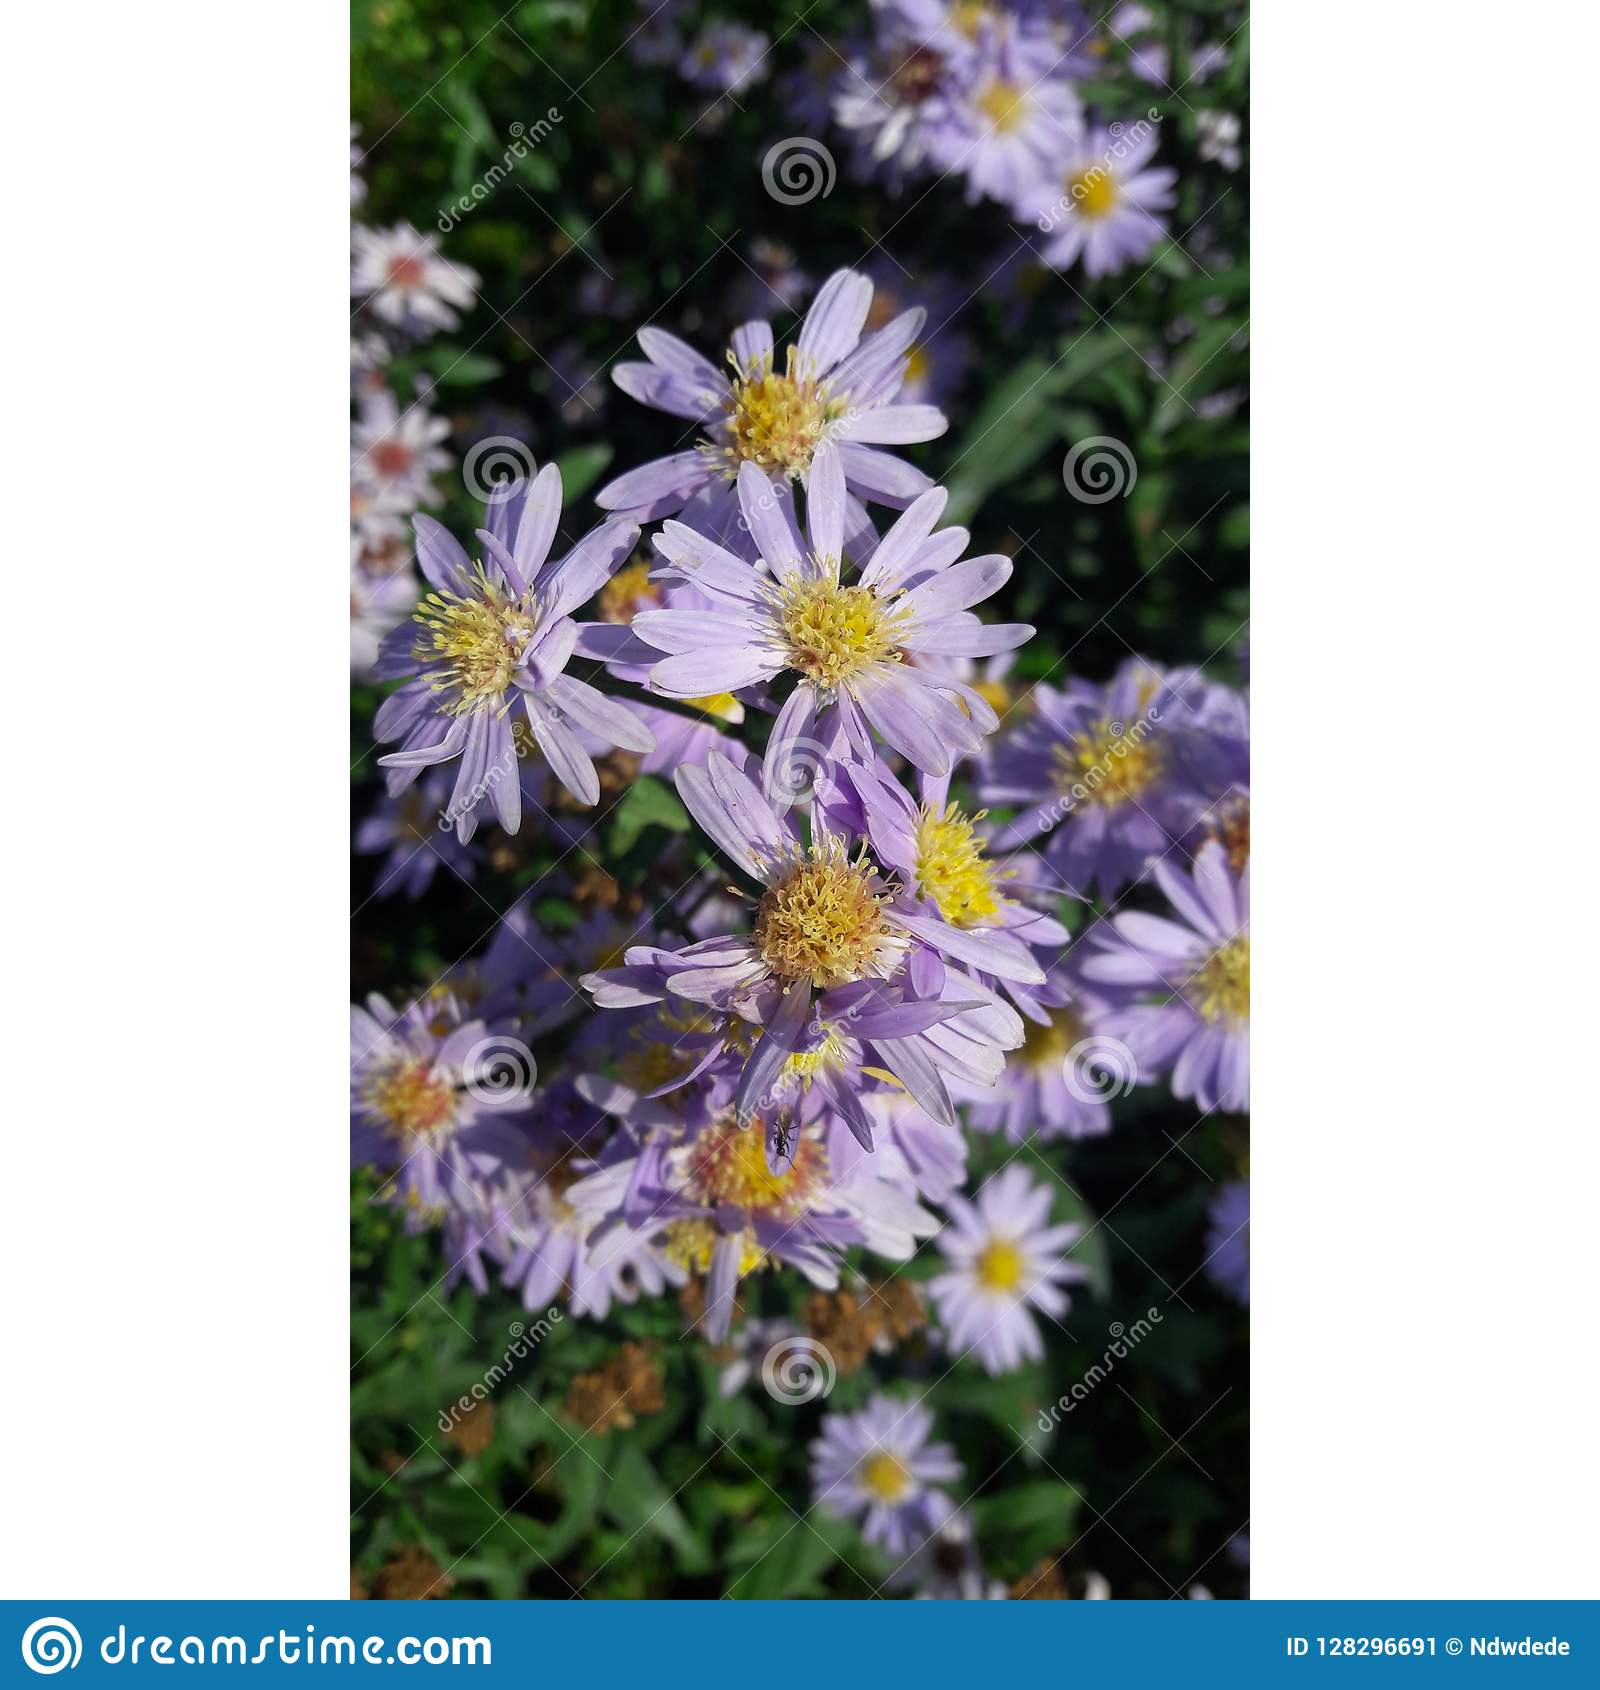 Stunning flowers in the nature in purple color lot of flowers